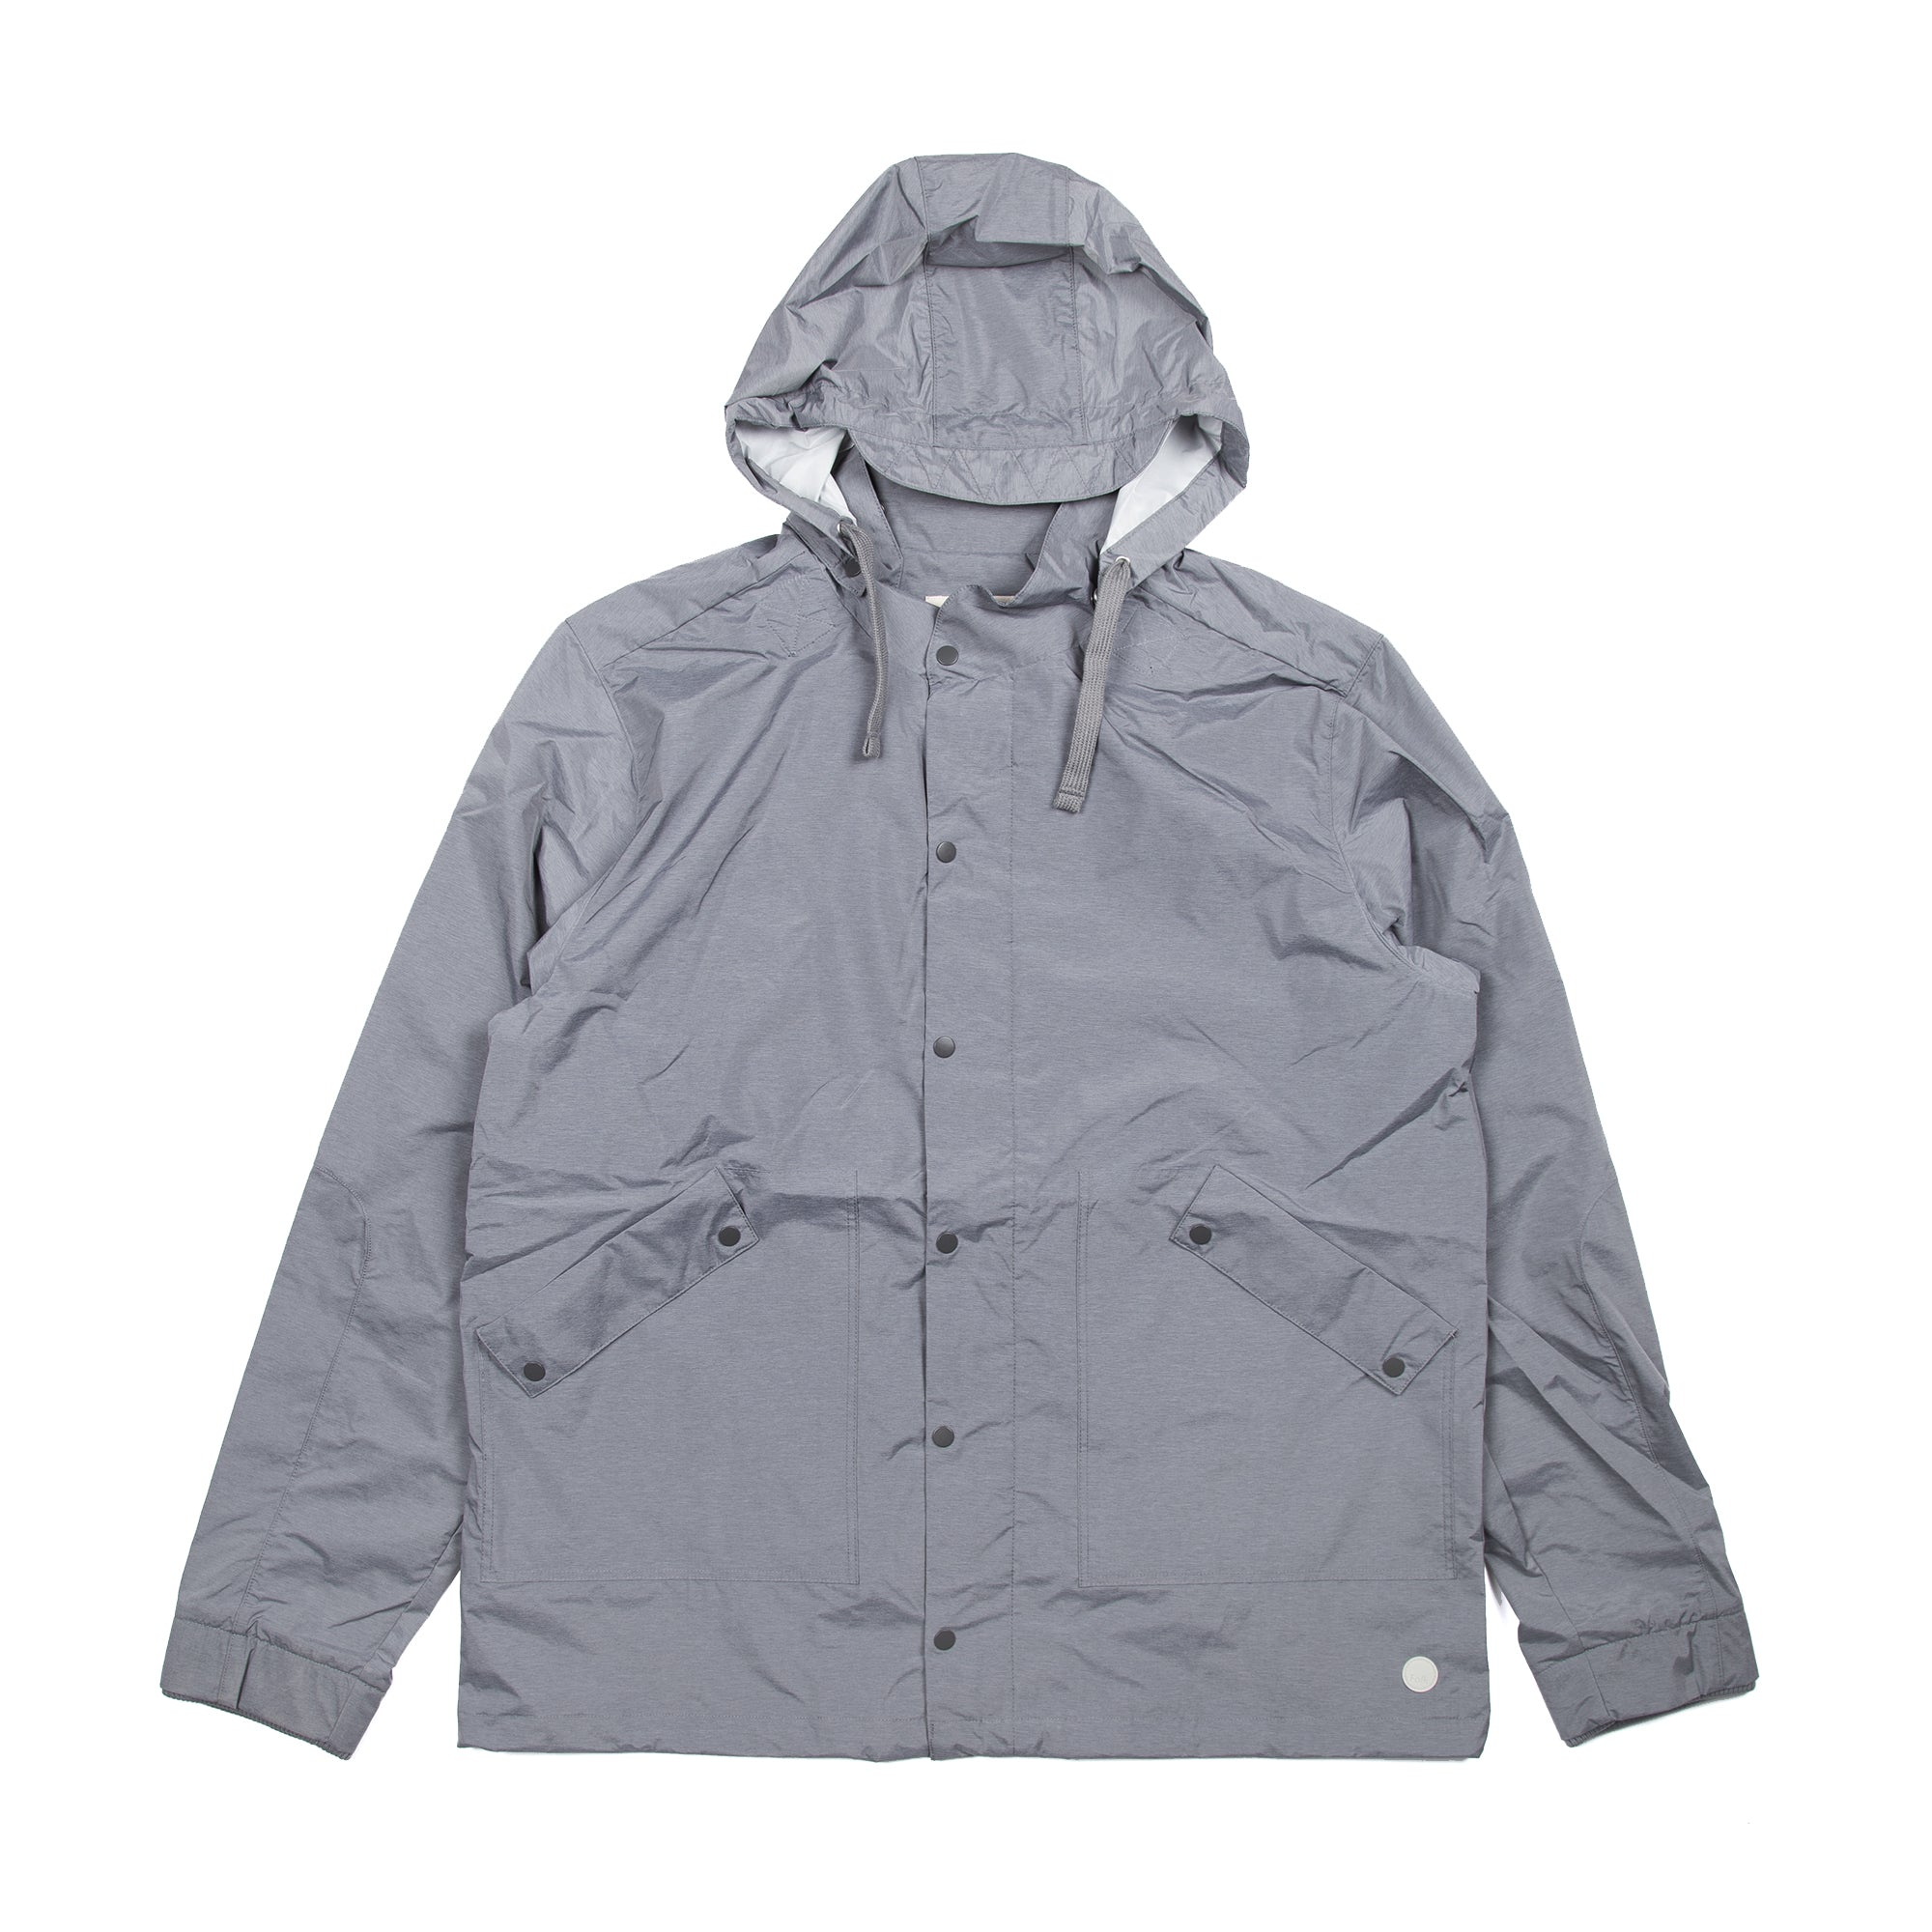 Raincoat - Silver Grey